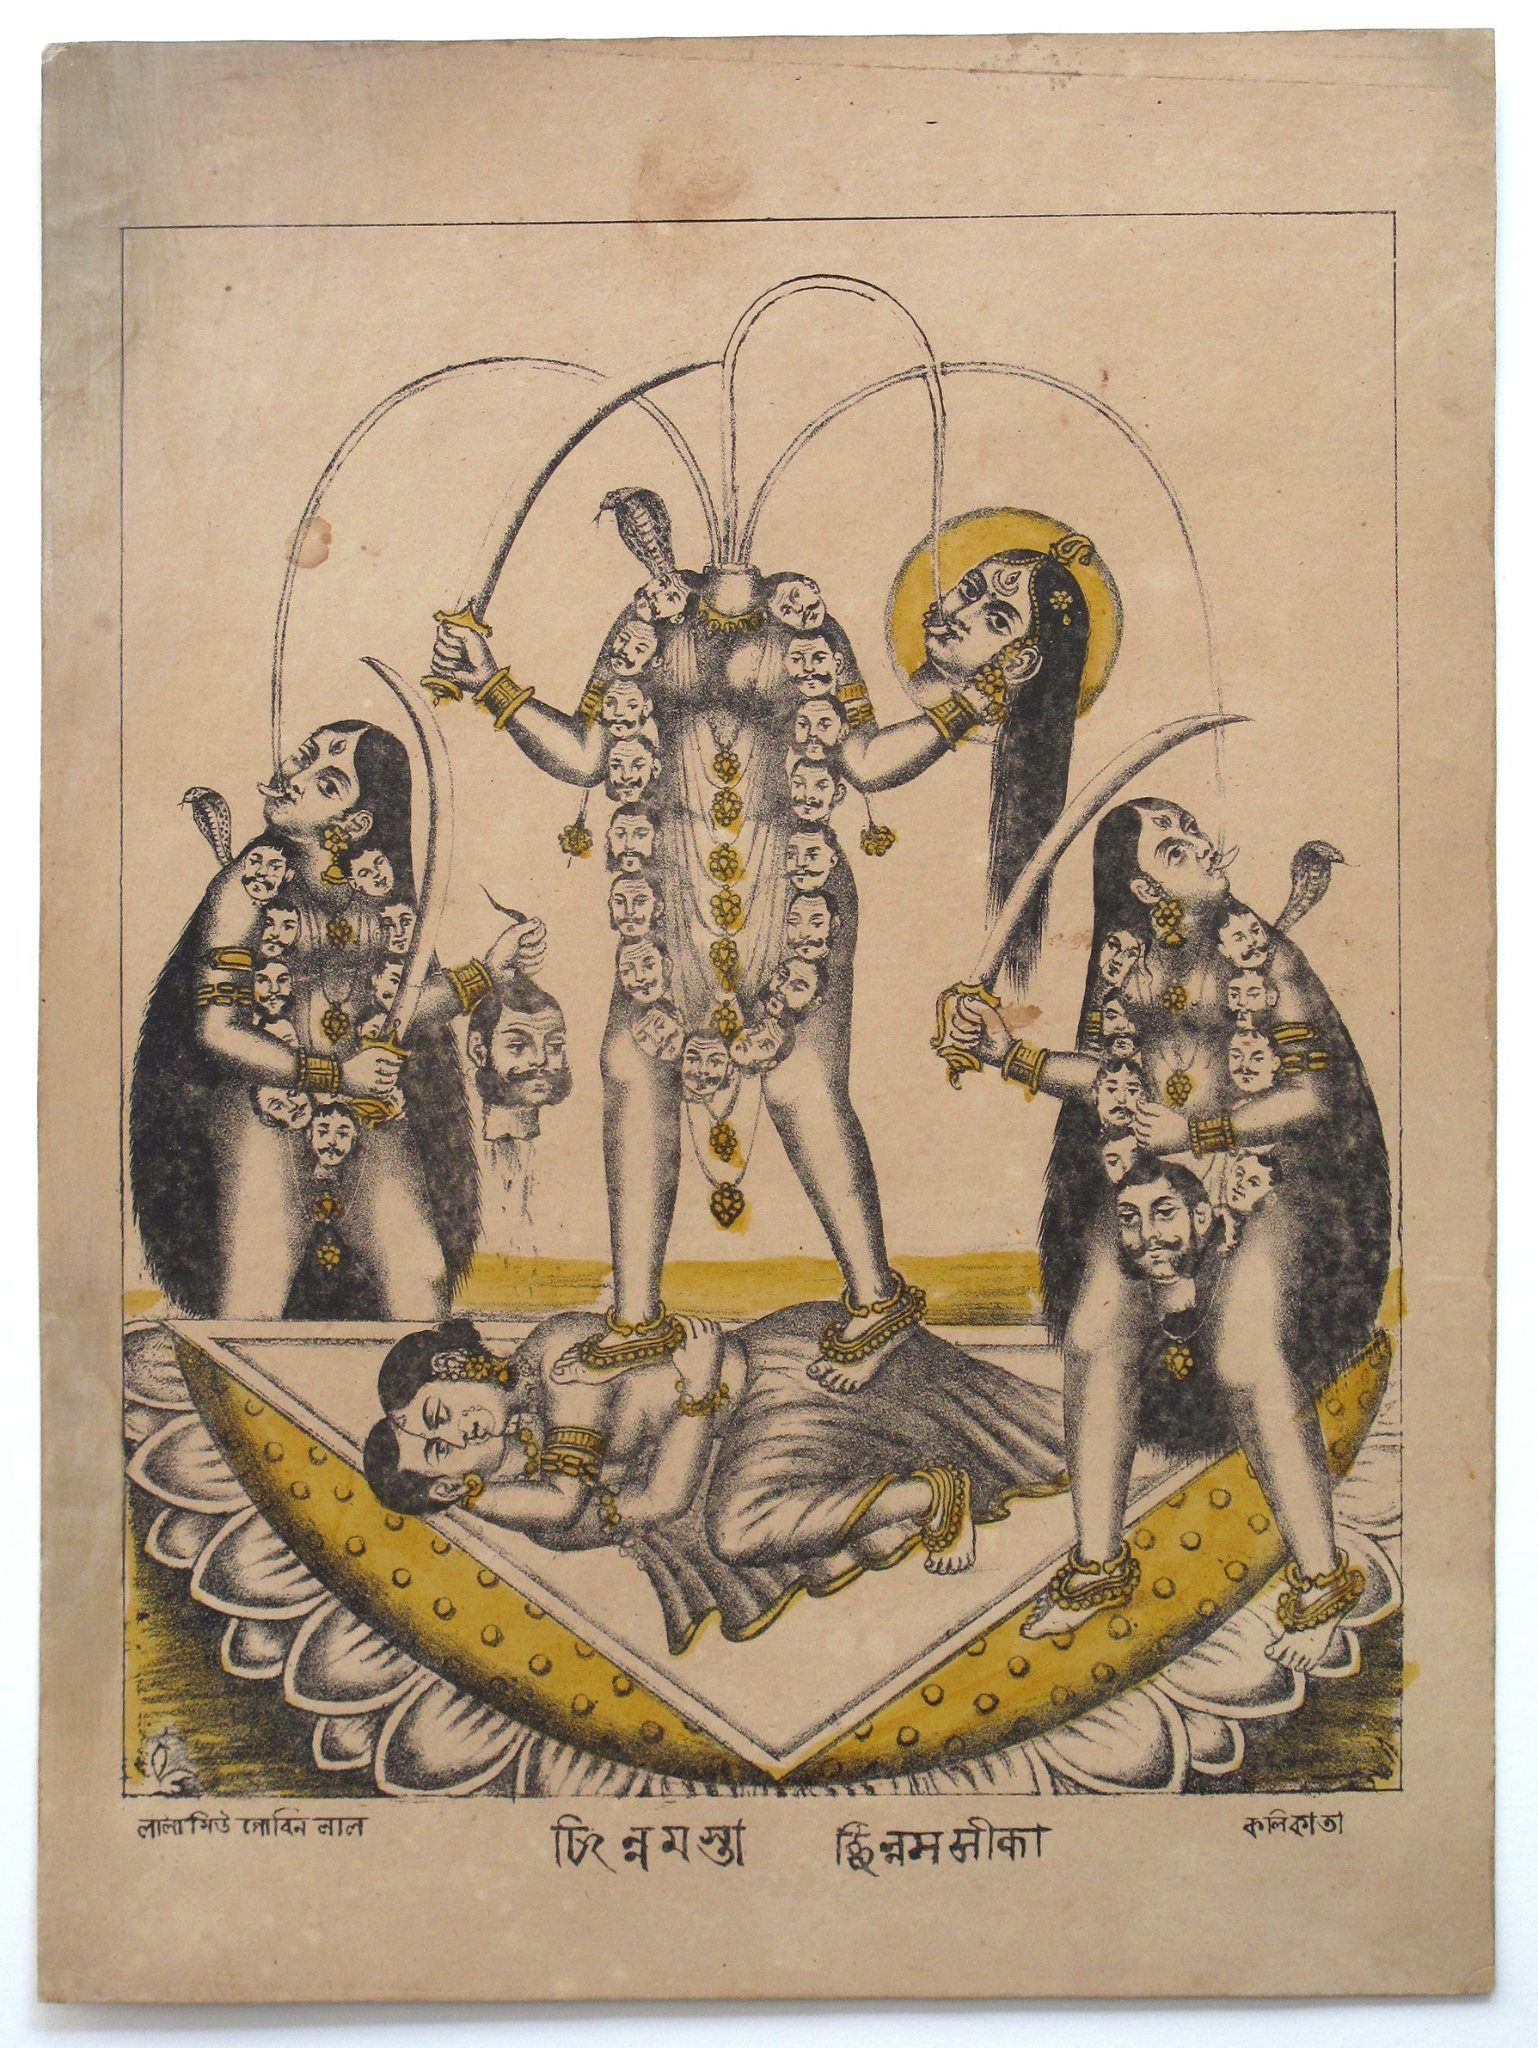 Goddess Chhinnamasta, One of the Mahavidya - Vintage Print c1870-80's